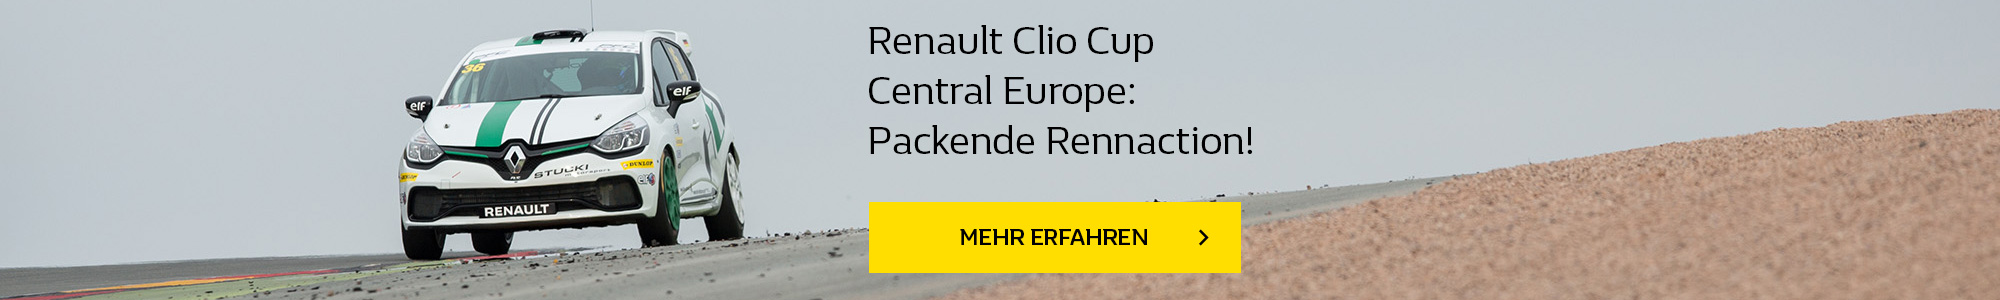 Renault Clio Cup Europe